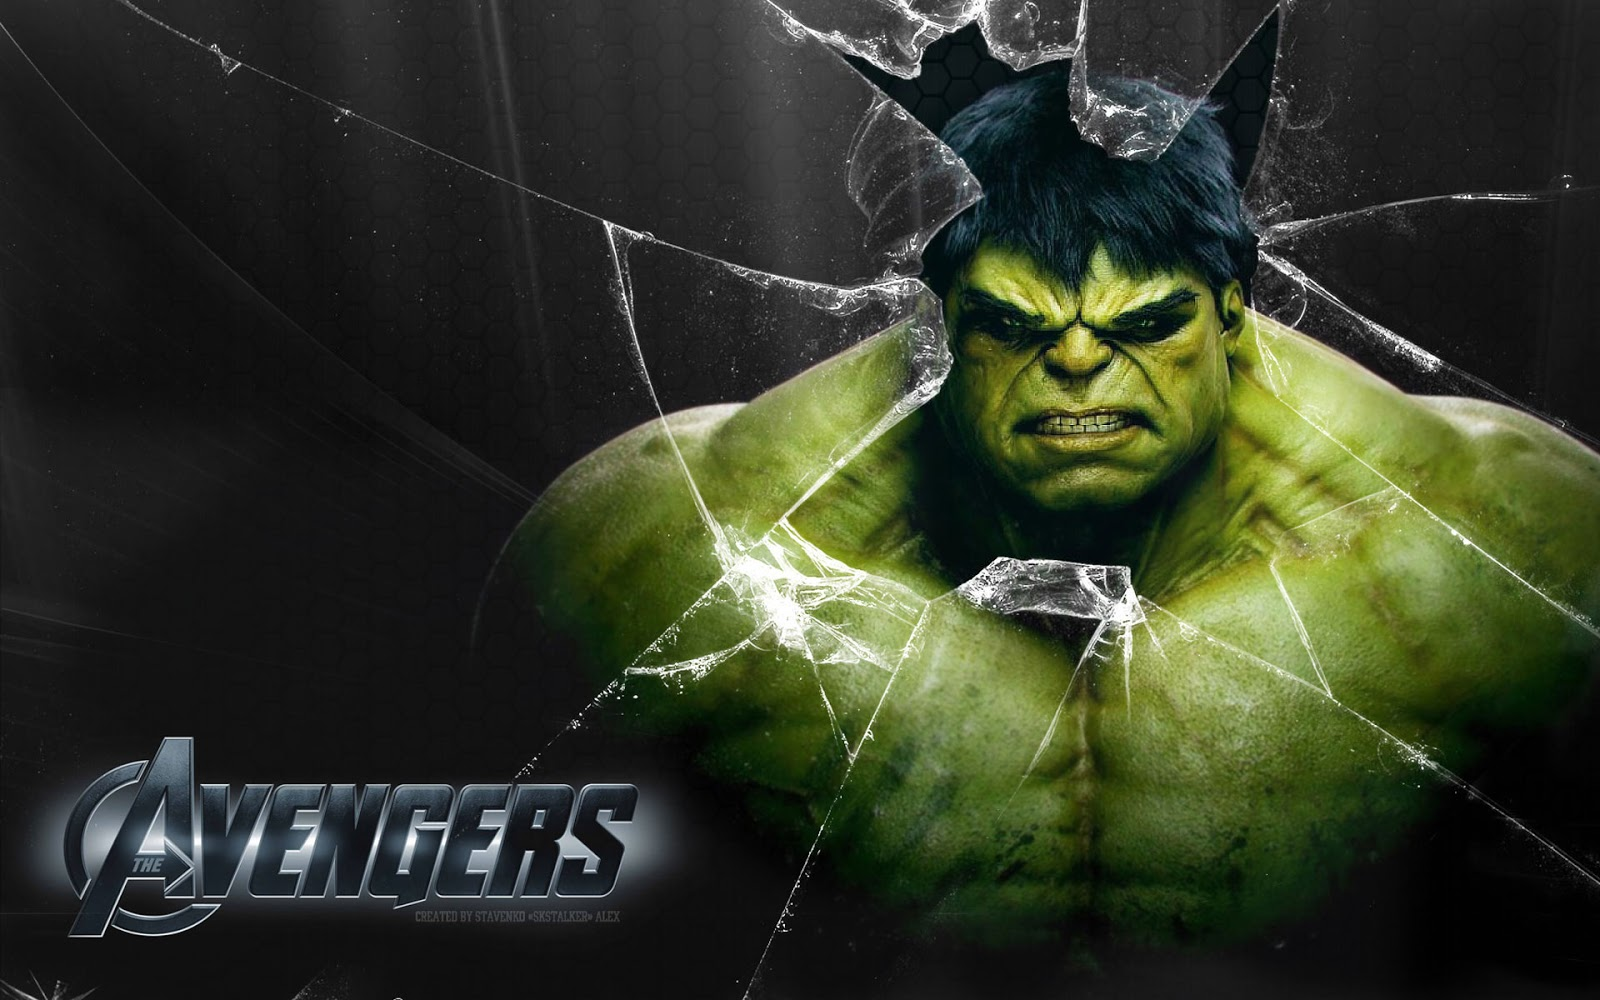 The Incredible Hulk in Avengers Wallpaper